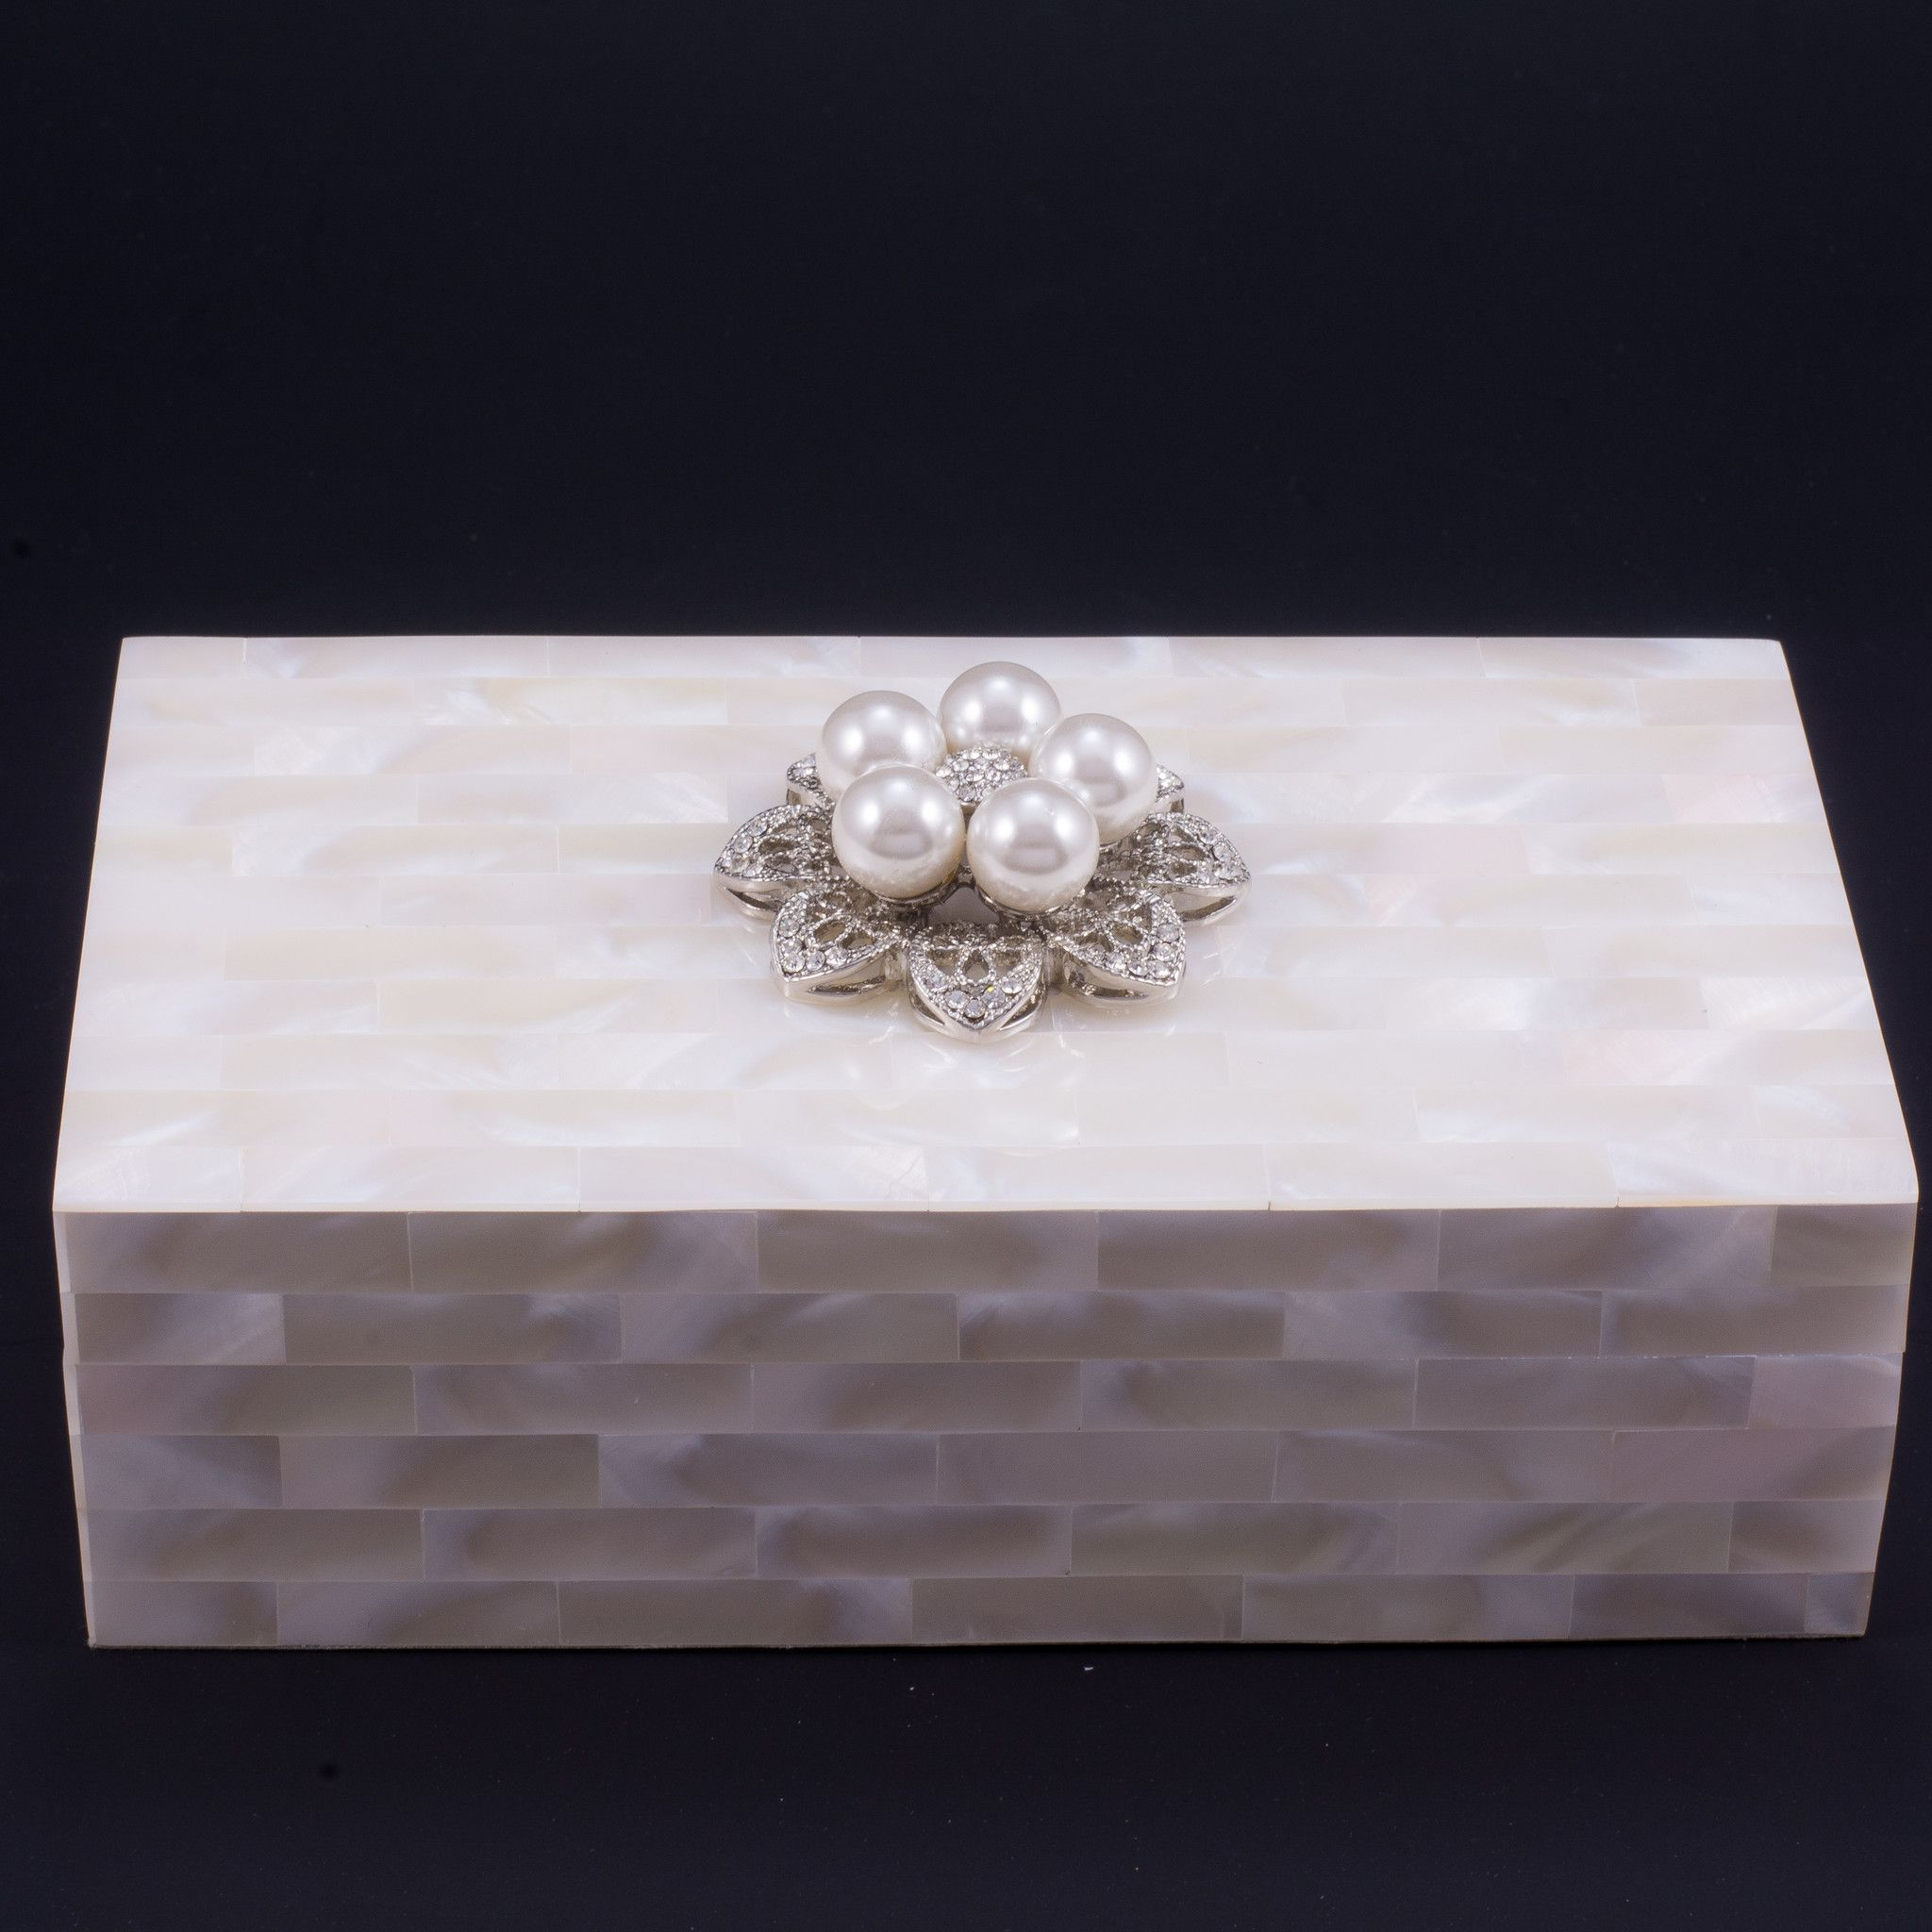 Mother of Pearl Jewelry Box Featuring Swarovski © Crystals and 5 Pearls